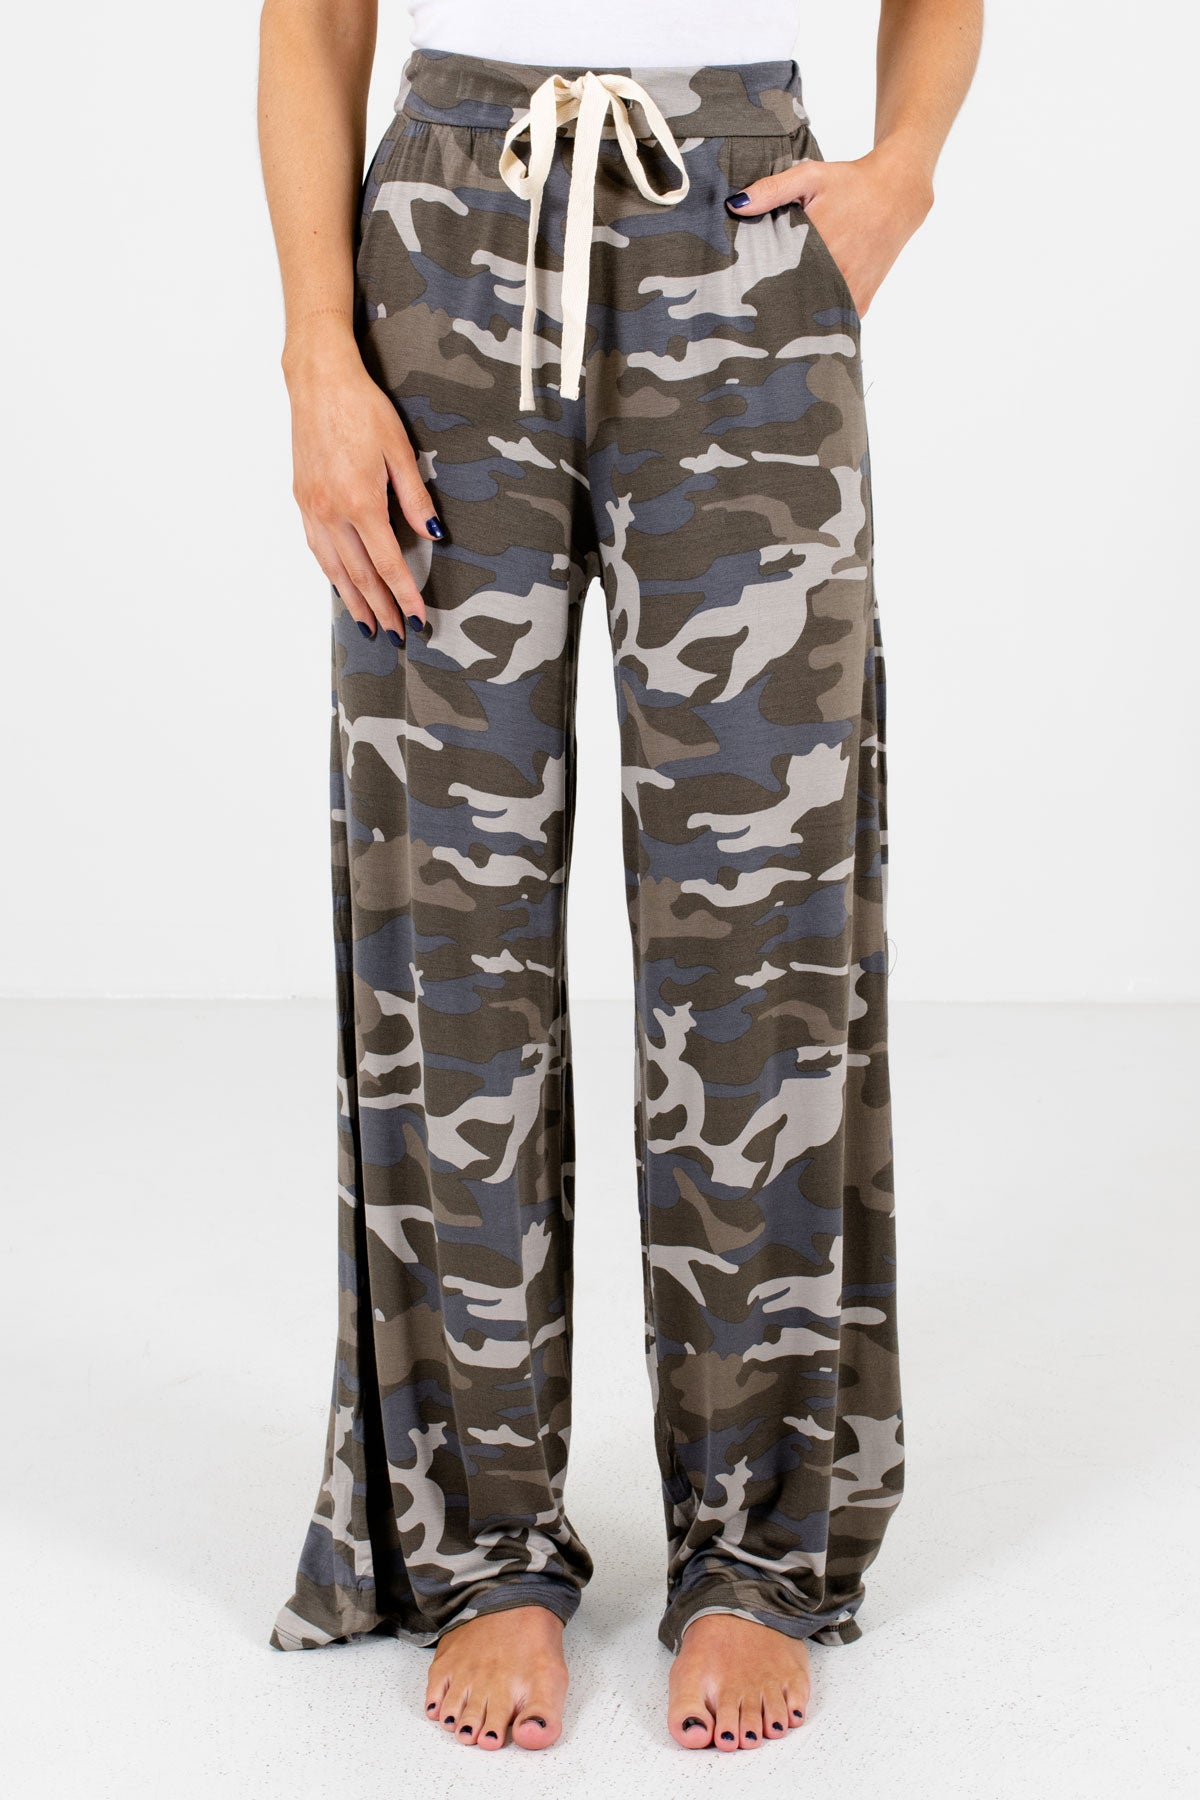 Green Camouflage Print Boutique Pants for Women